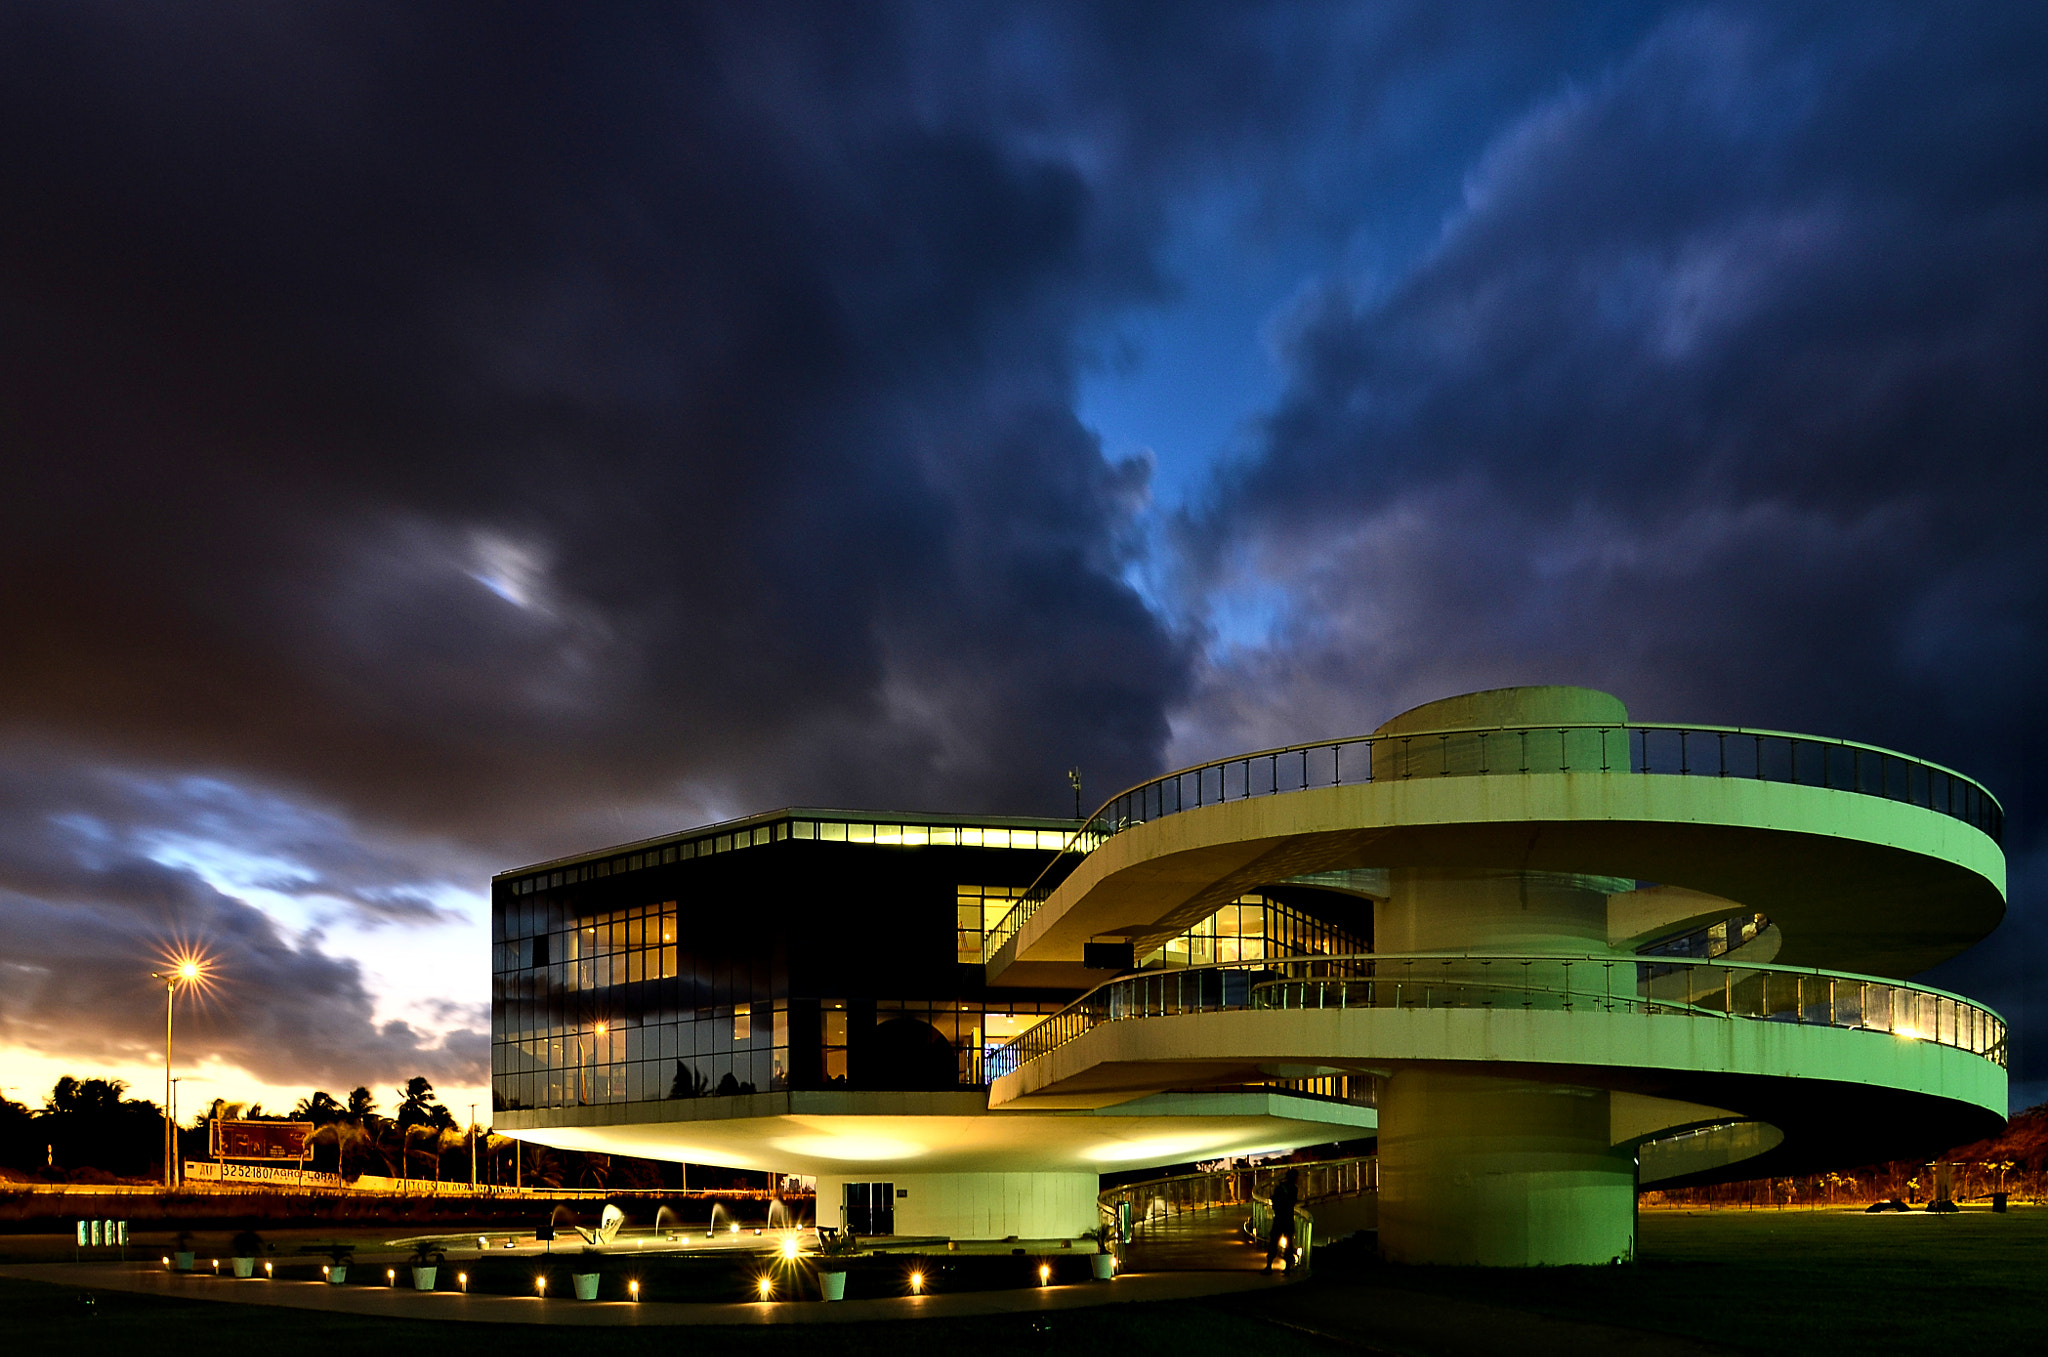 Photograph Niemeyer's sky by Francisco Cribari on 500px